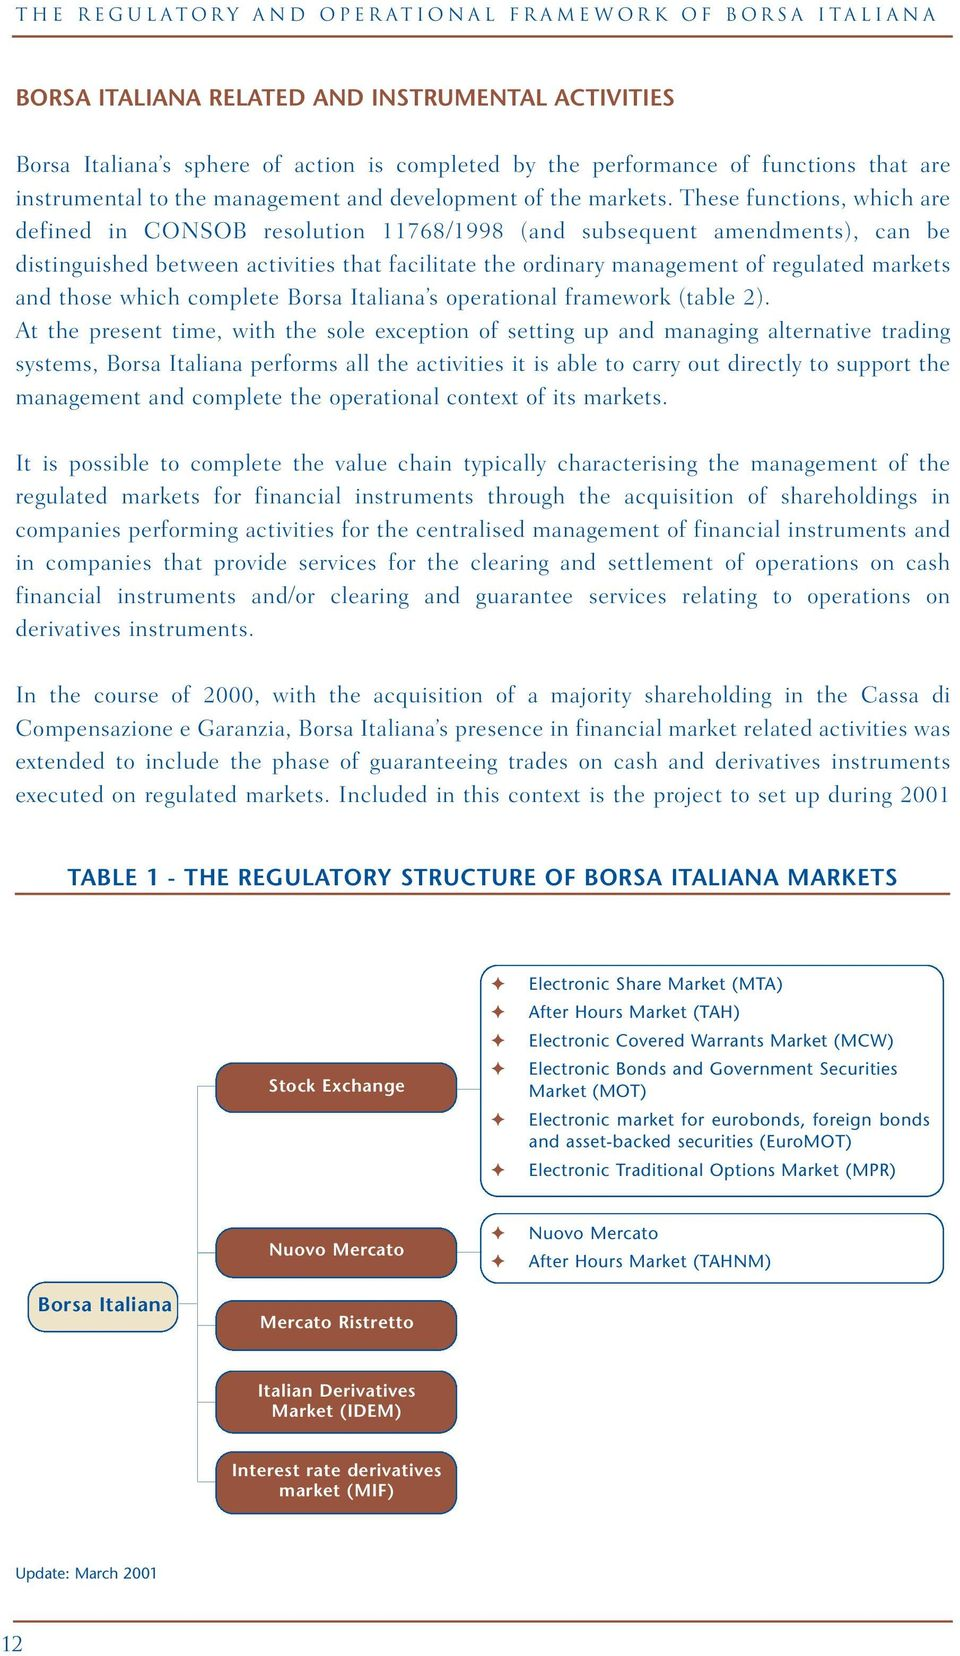 These functions, which are defined in CONSOB resolution 11768/1998 (and subsequent amendments), can be distinguished between activities that facilitate the ordinary management of regulated markets